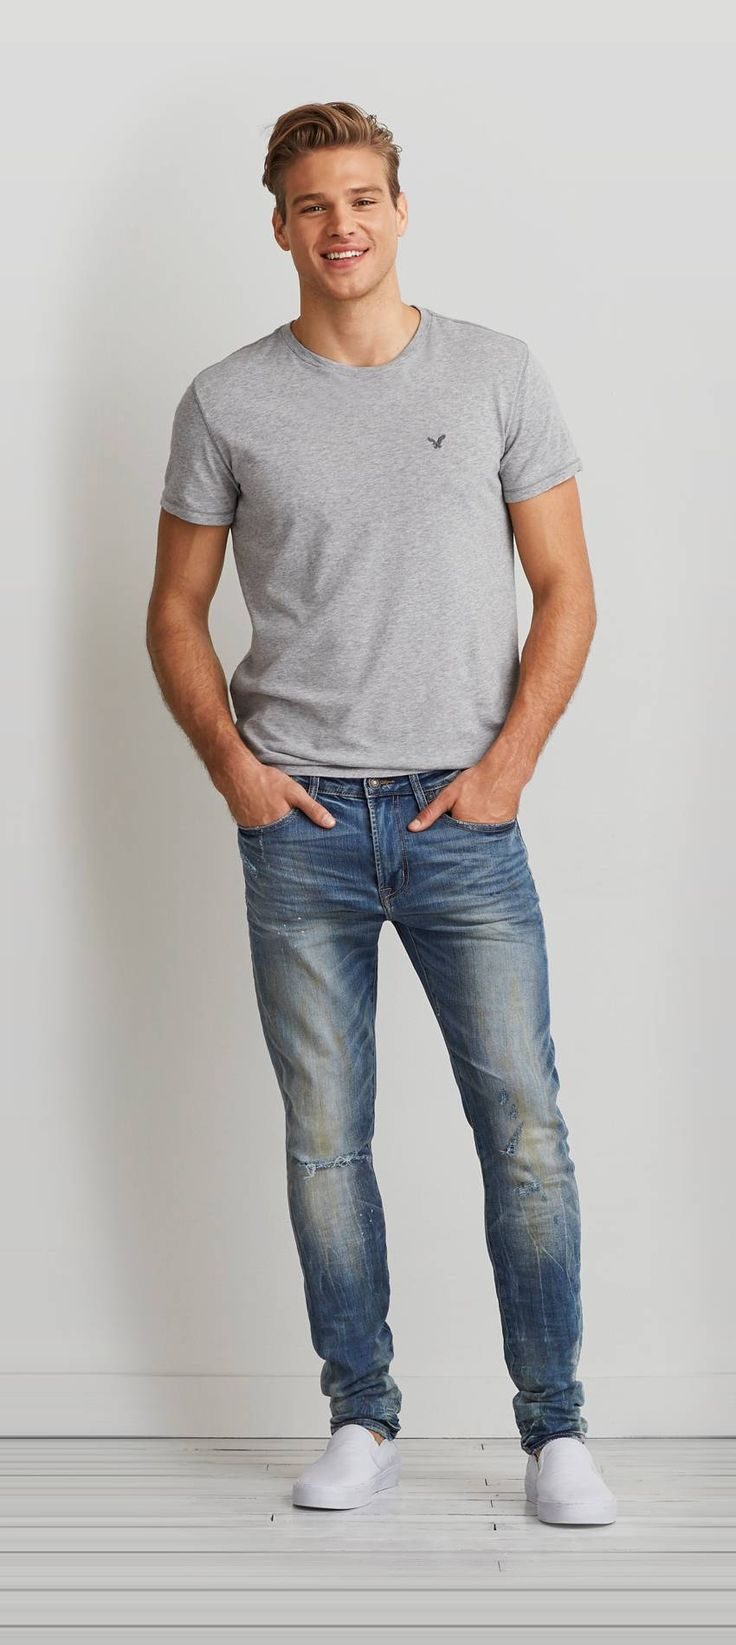 Find every men?s jeans fit and wash you?ll love from American Eagle Outfitters. Choose from Classic Bootcut, Slim Straight, Skinny and more in light and dark washes from America?s favorite denim brand.